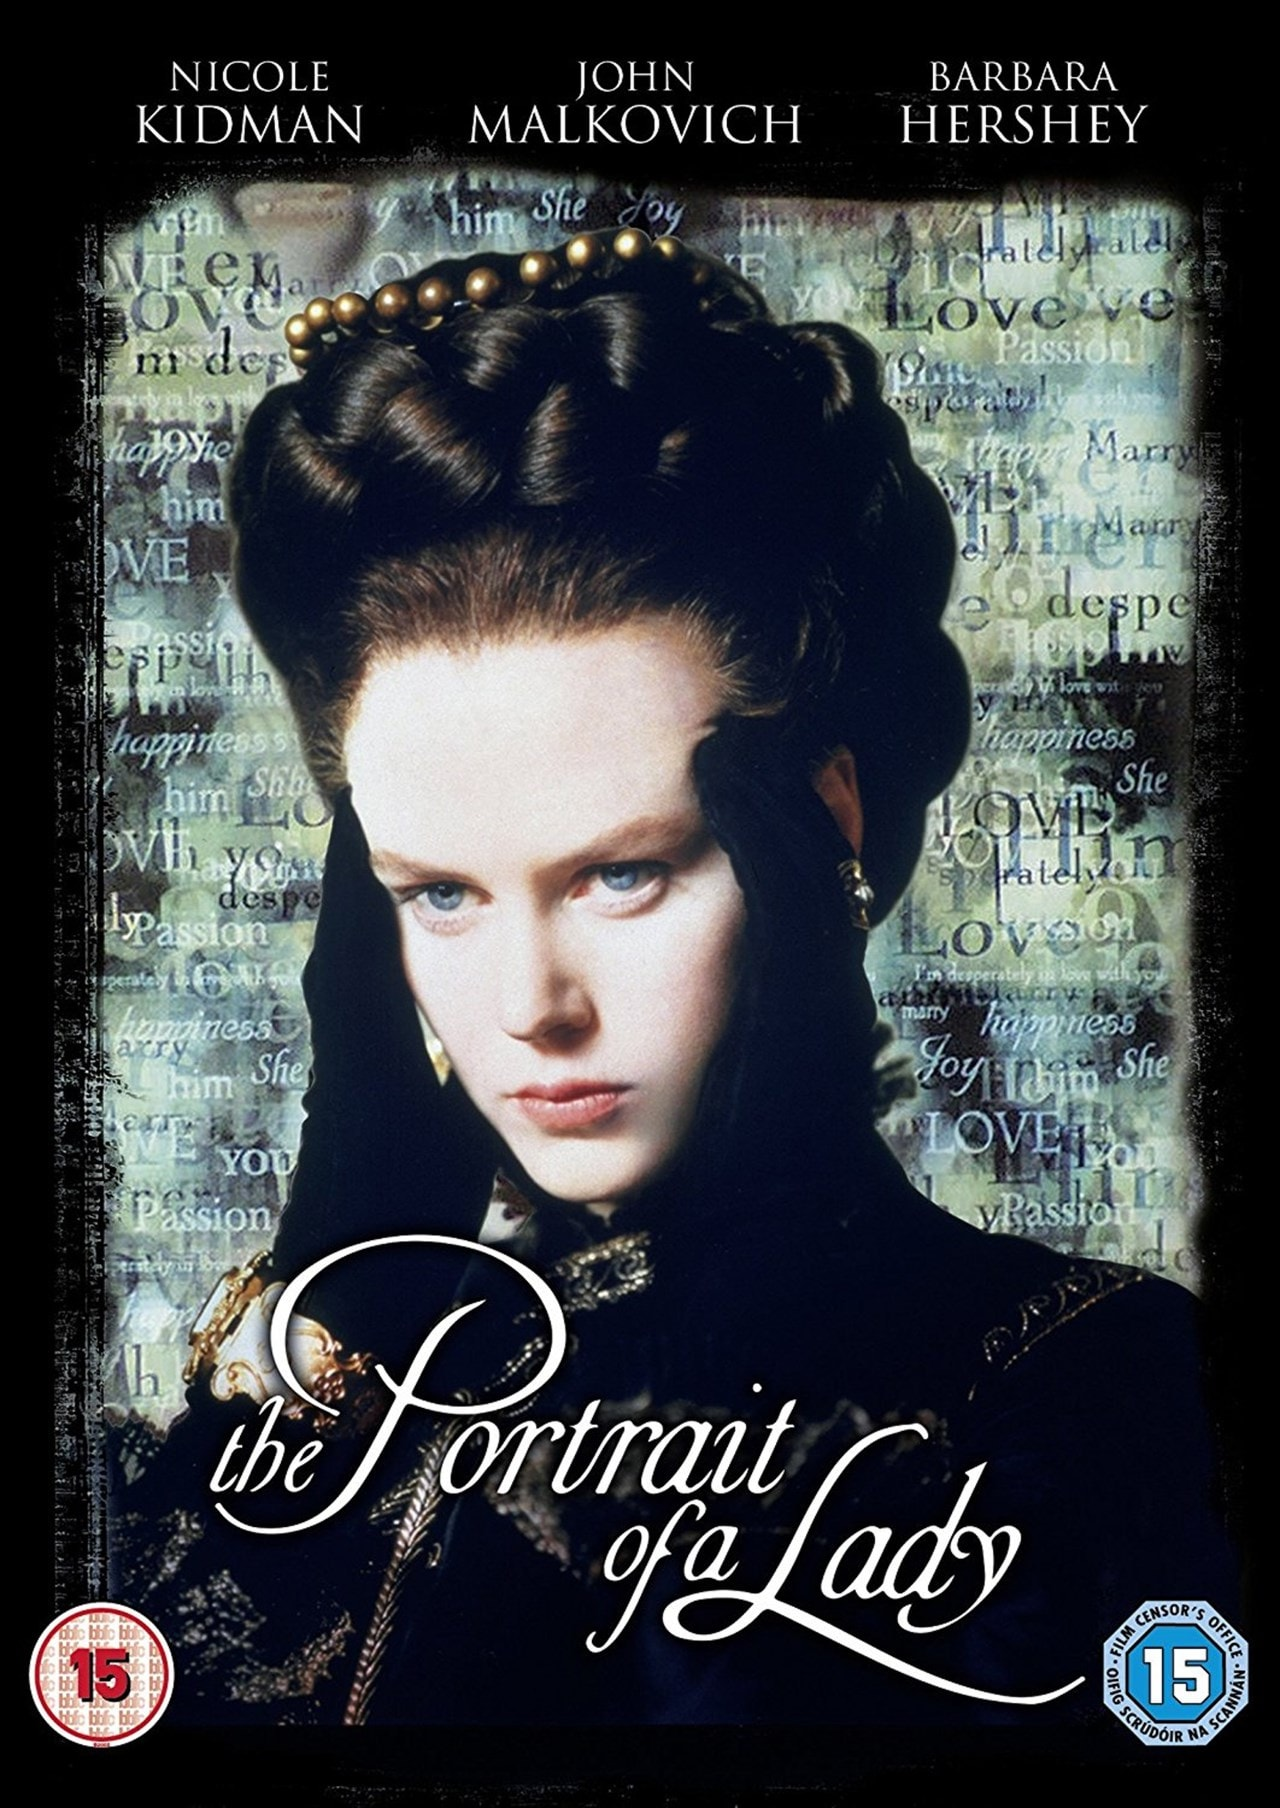 The Portrait of a Lady - 1